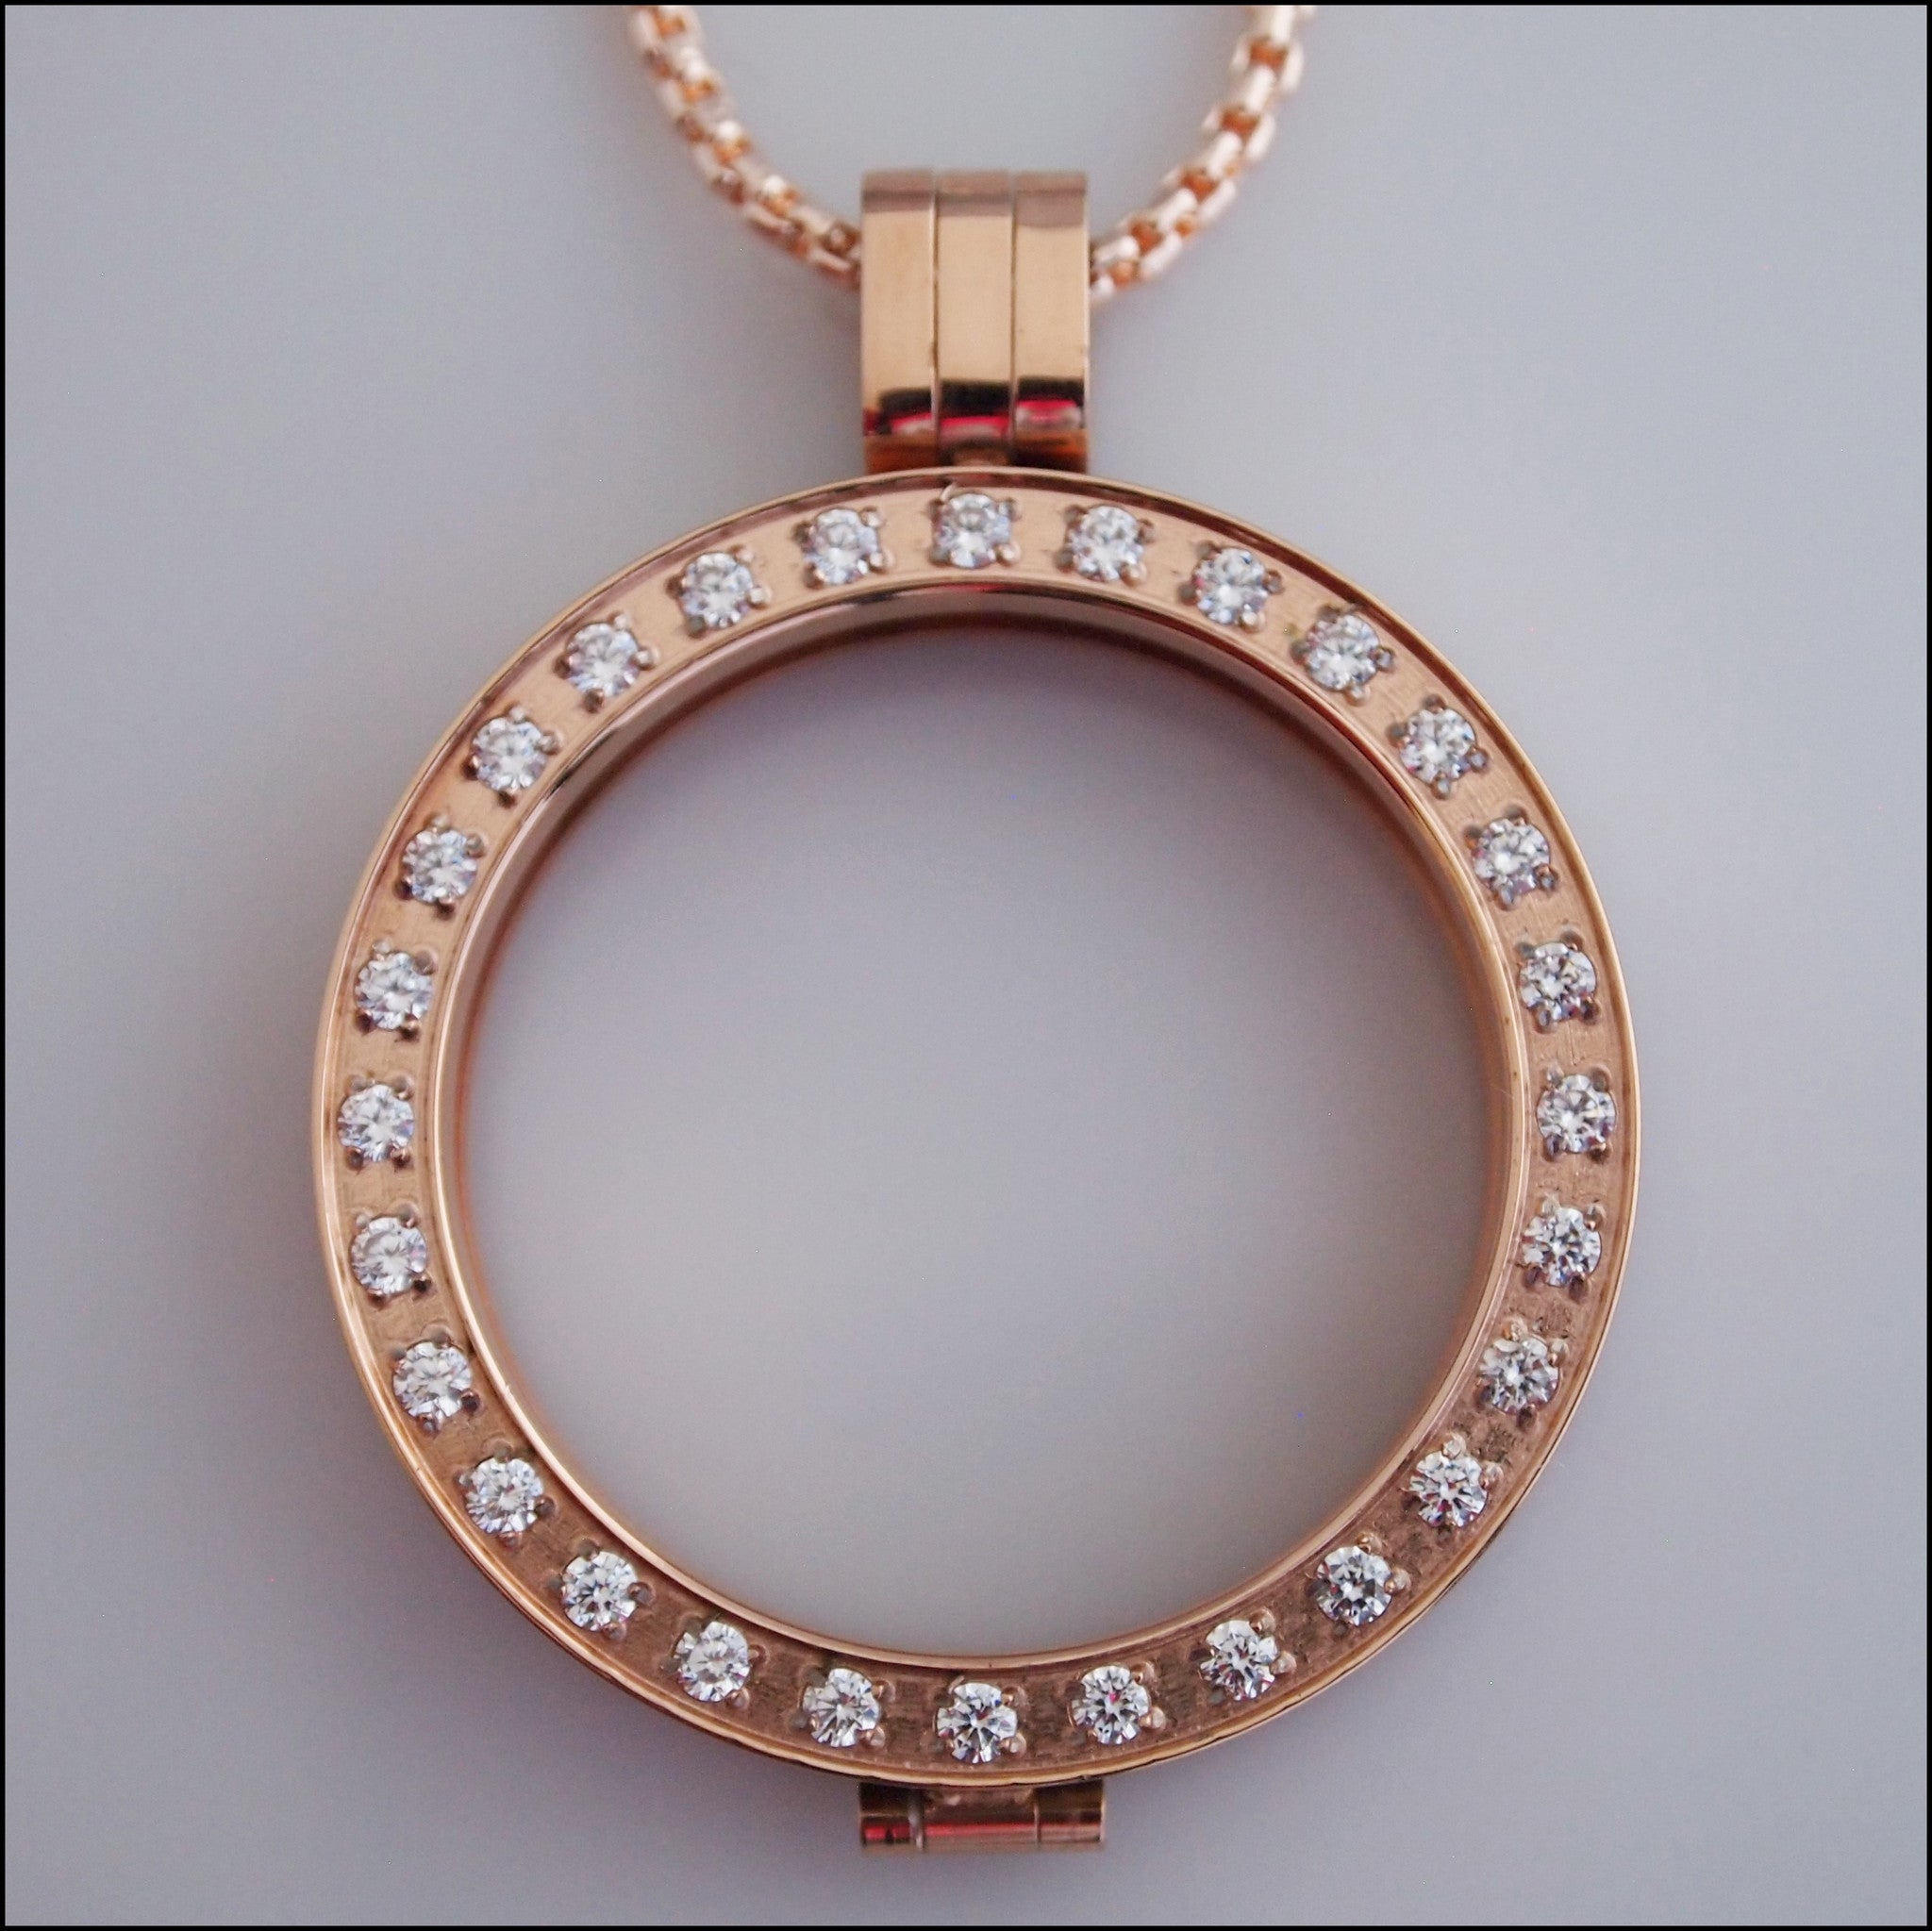 Crystal Coin Holder Pendant - Rose Gold - Find Something Special